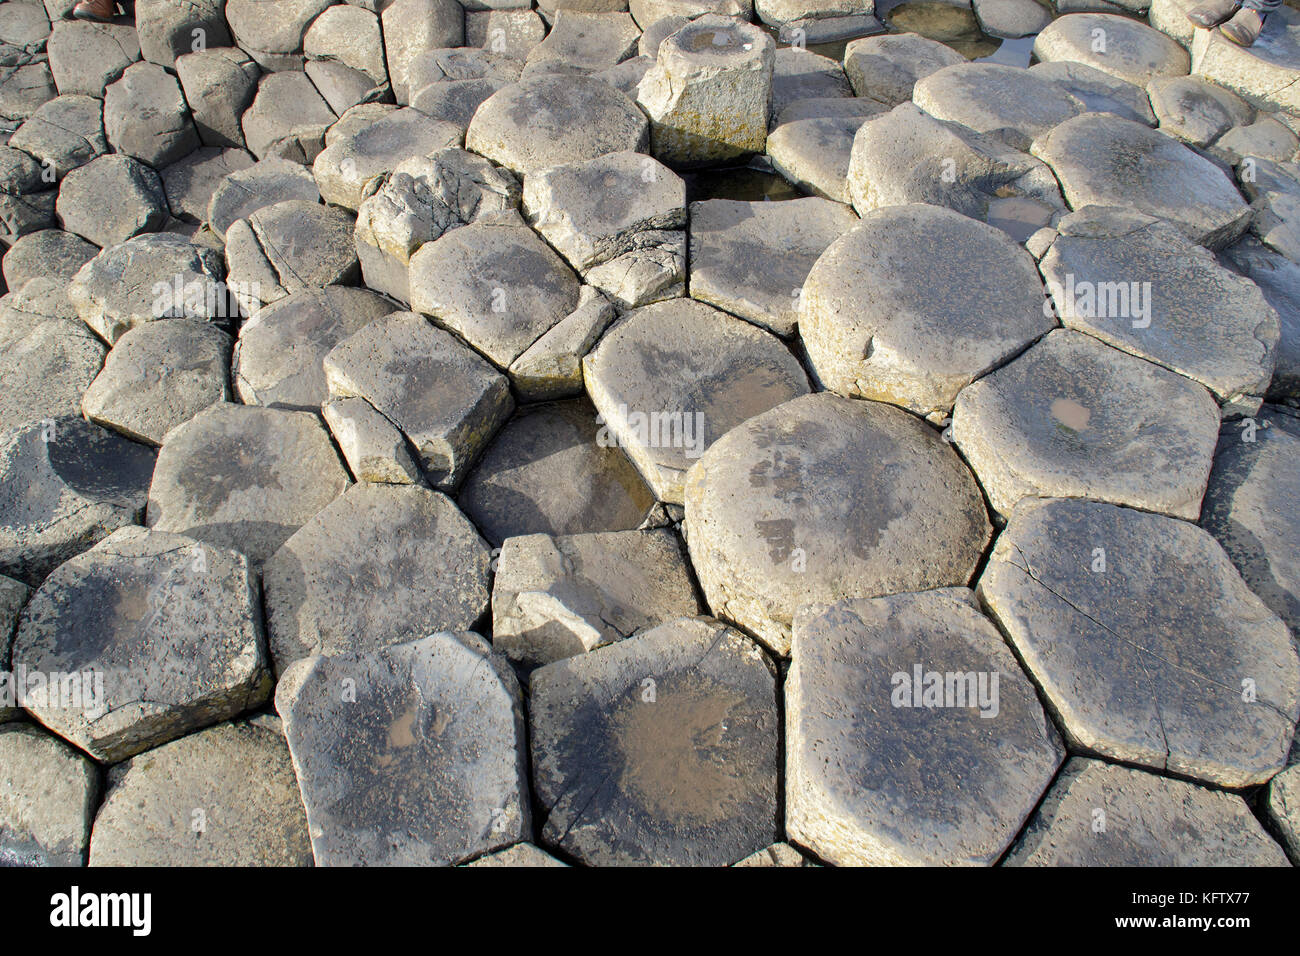 basaltic columns, Giants Causeway, Bushmills, Co. Antrim, Northern Ireland - Stock Image